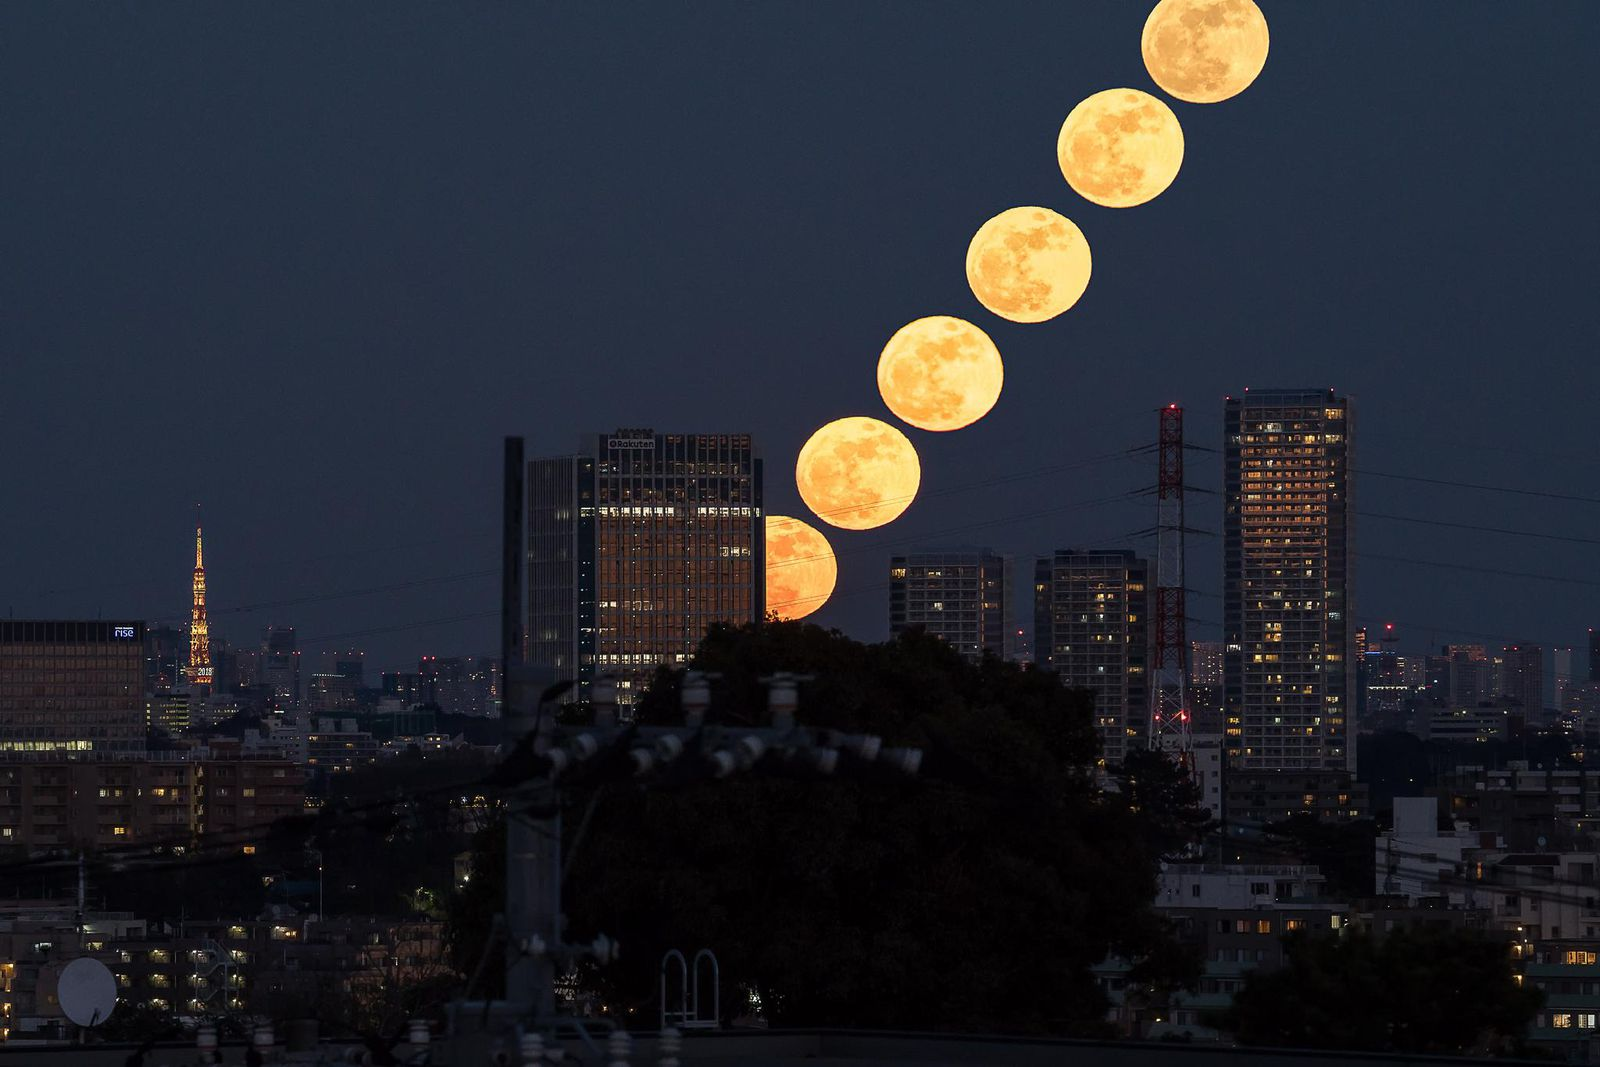 Supermoon around the world in case you missed it (pics